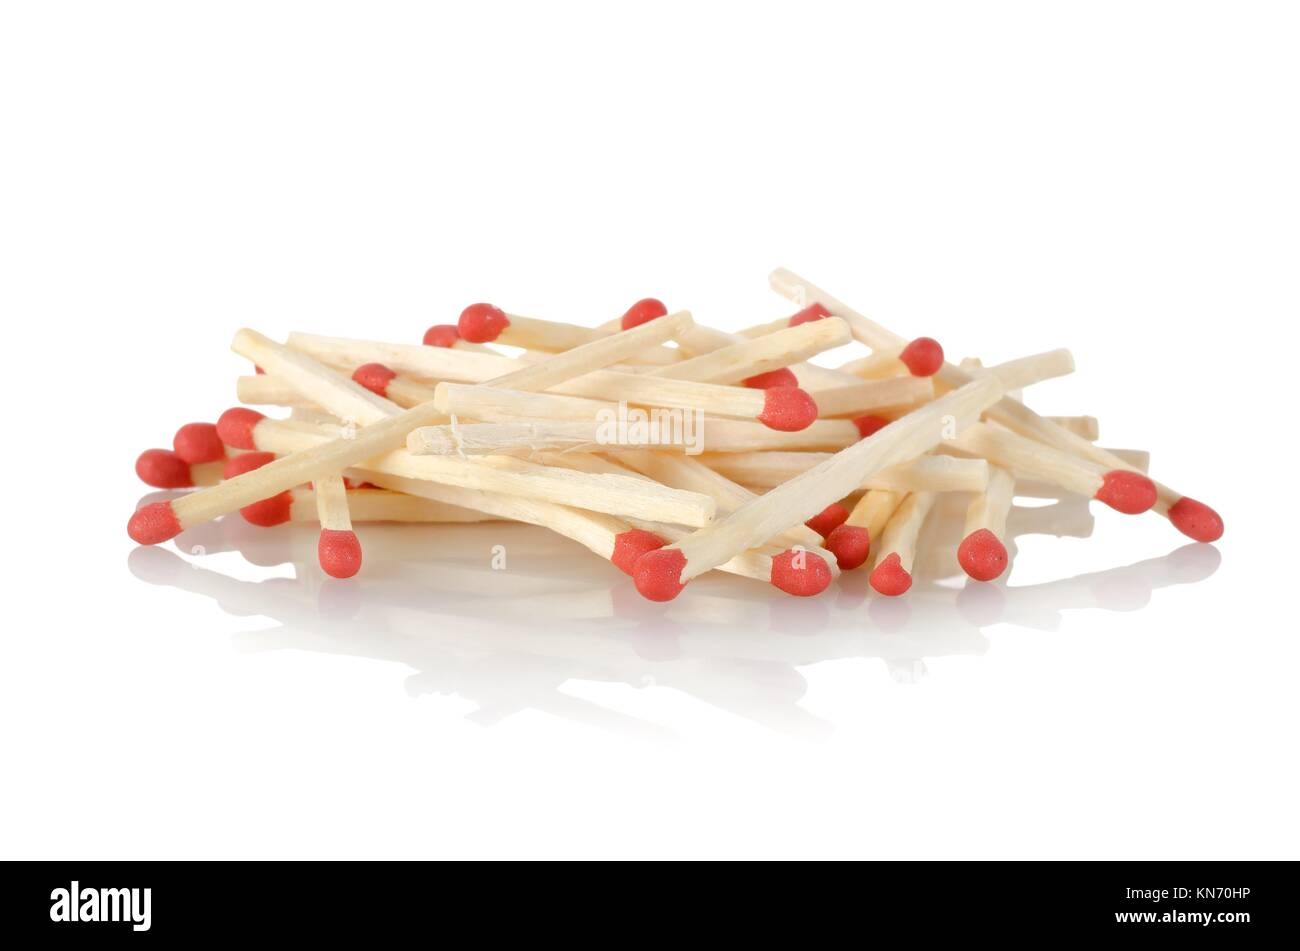 Match sticks isolated on a white background. - Stock Image